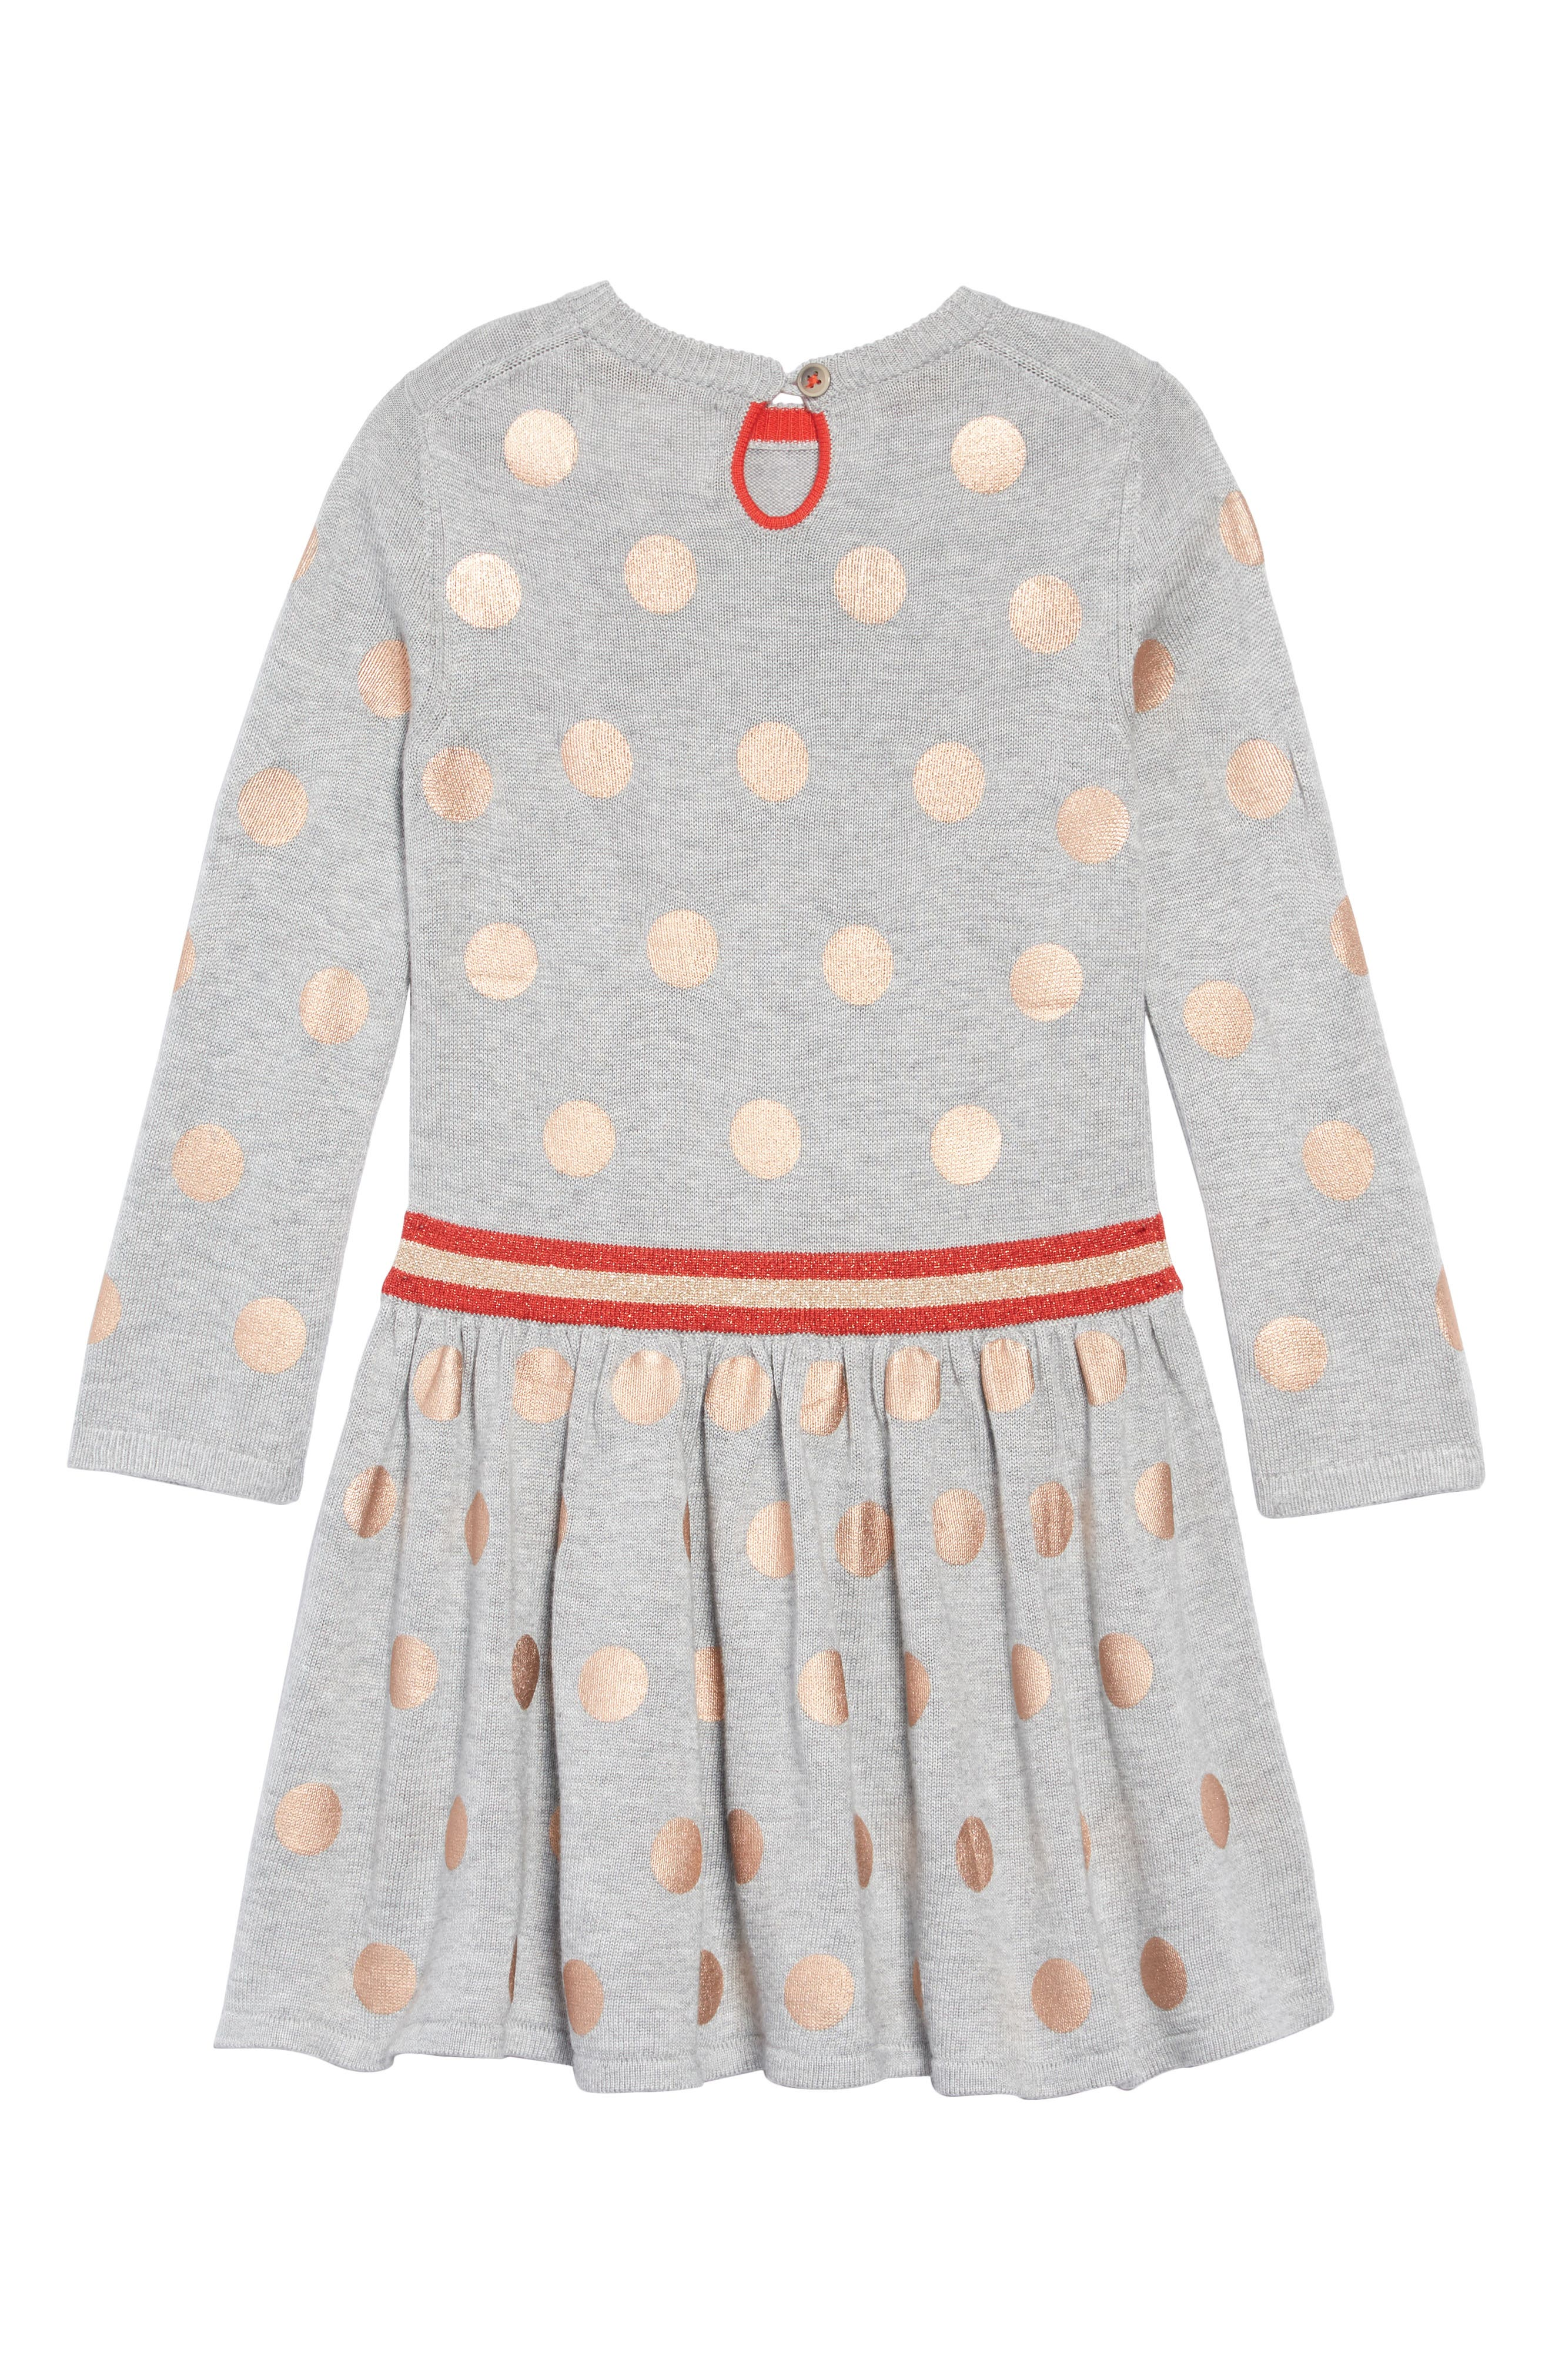 Mini Boden Foil Spot Knit Dress,                             Alternate thumbnail 2, color,                             GRY GREY MARL FOIL SPOTS